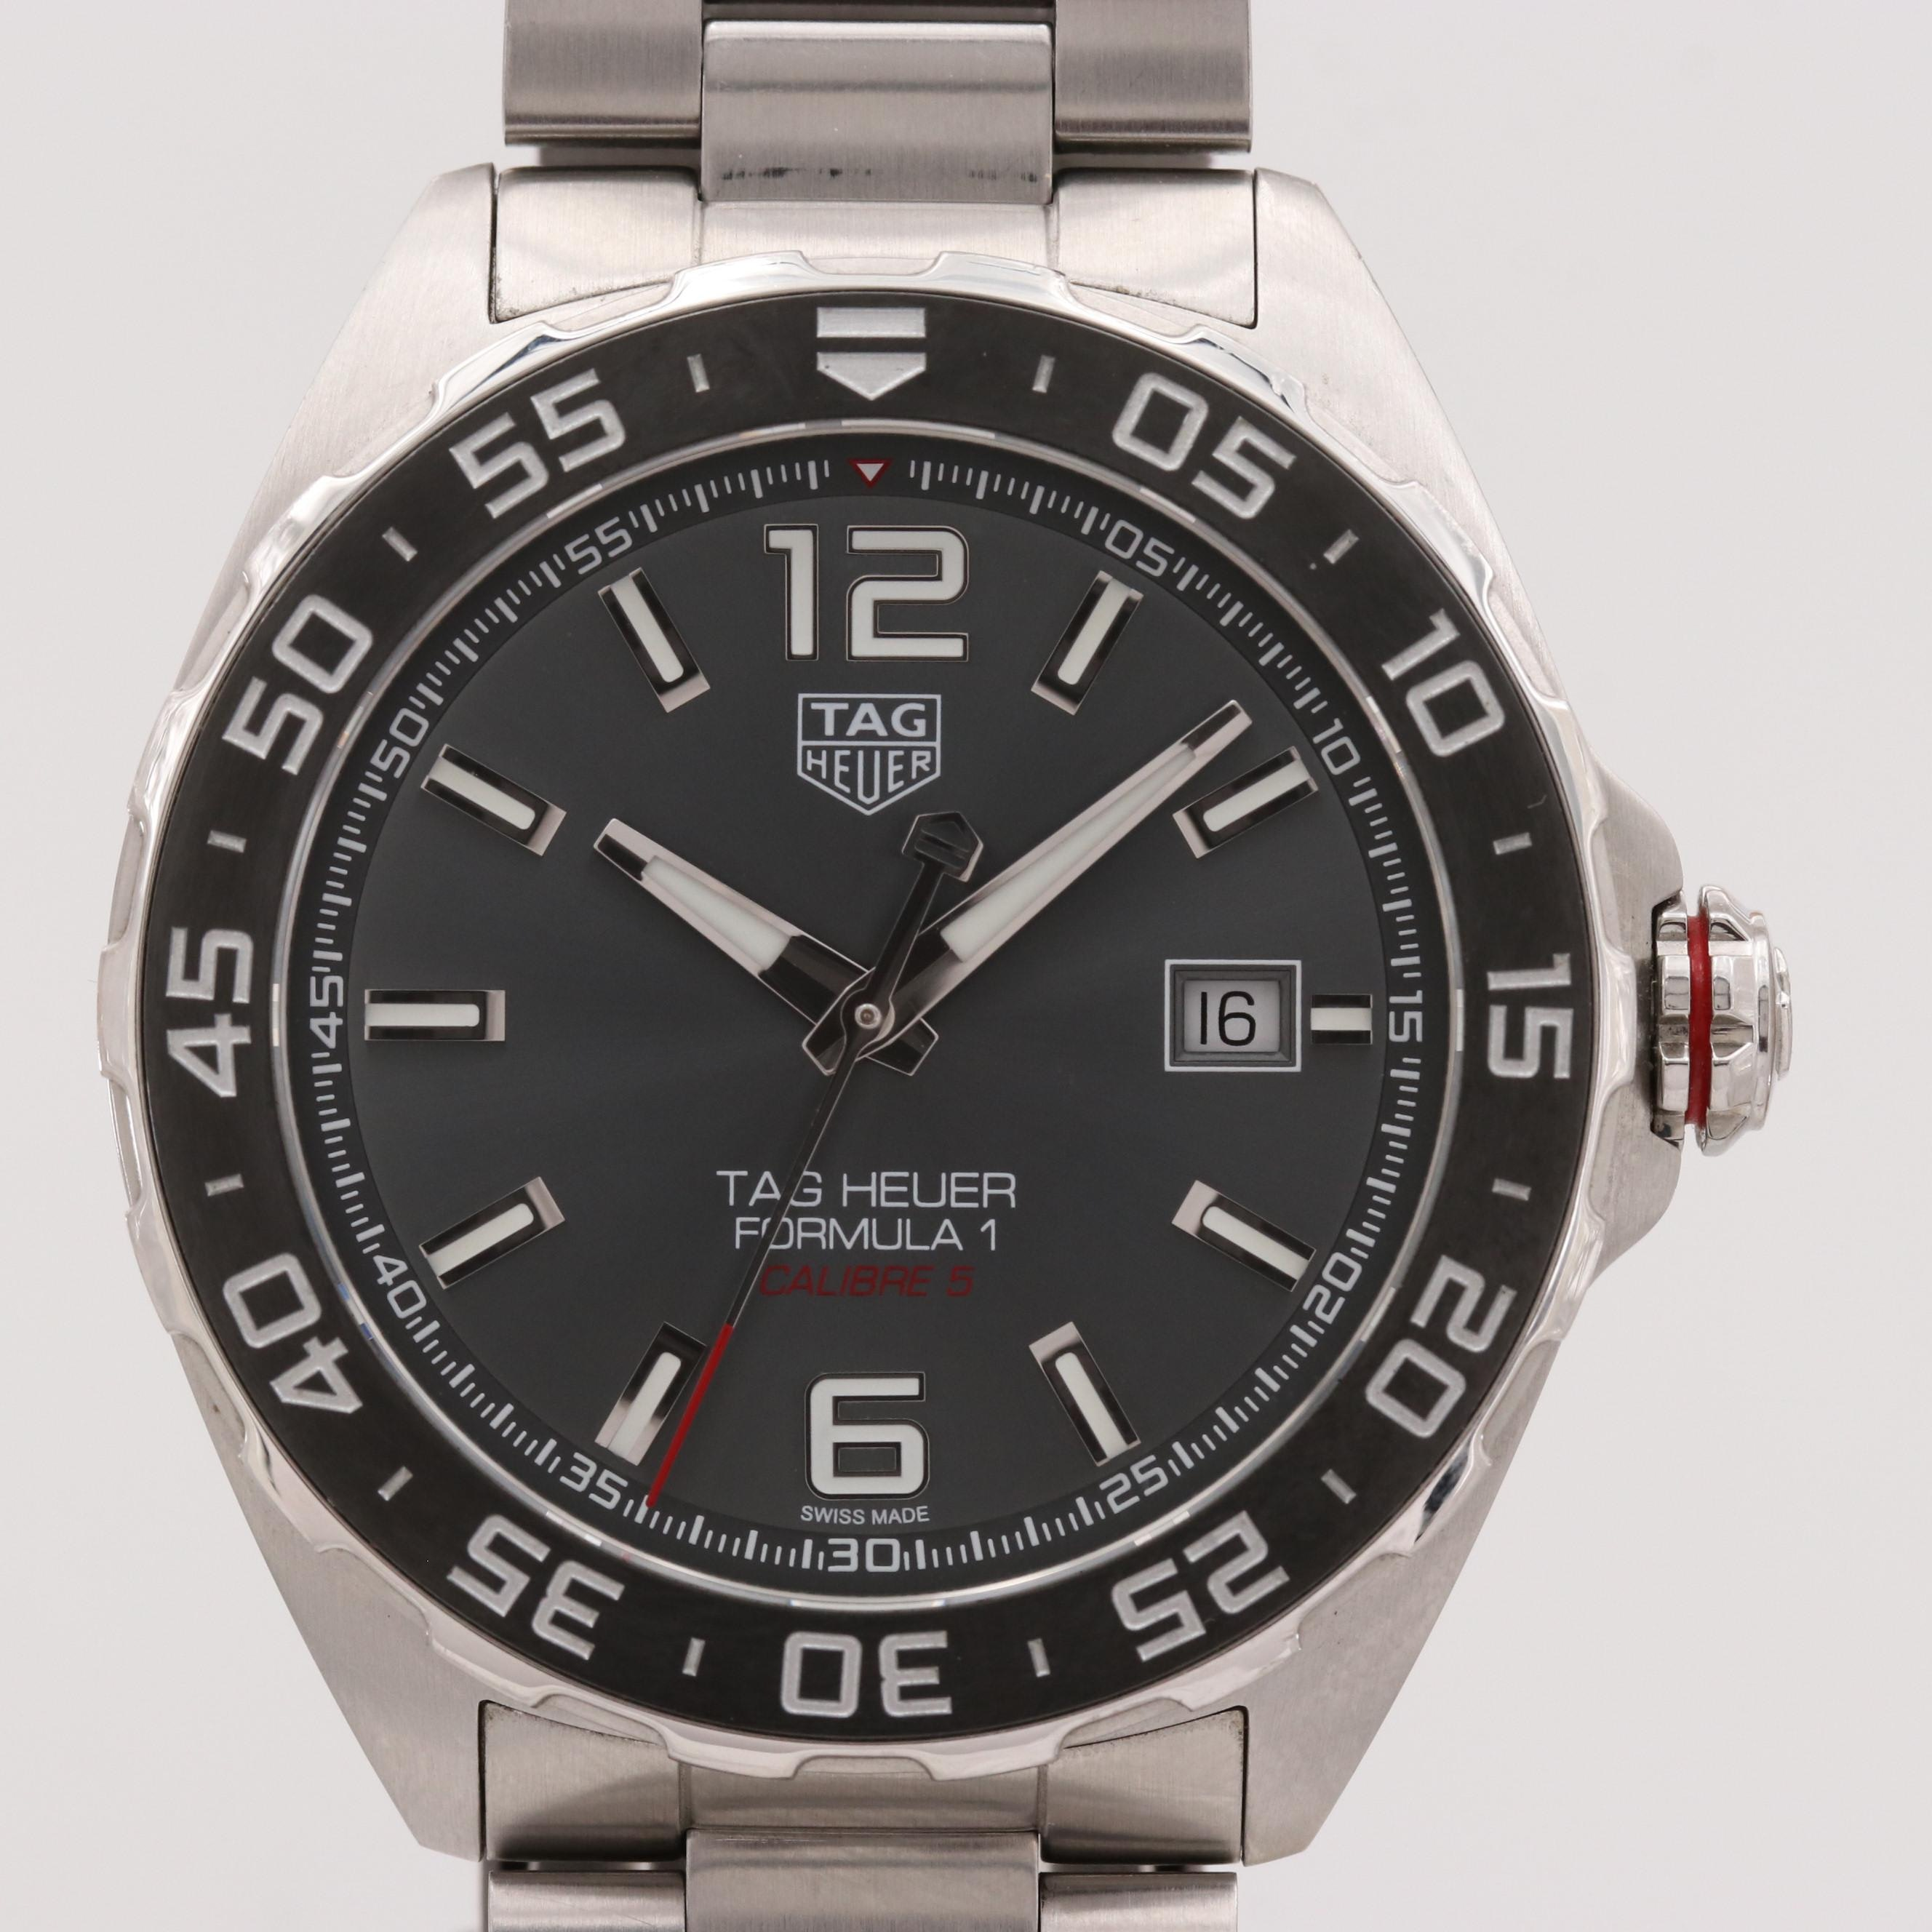 TAG Heuer Formula 1 Calibre 5 Stainless Steel Automatic Wristwatch